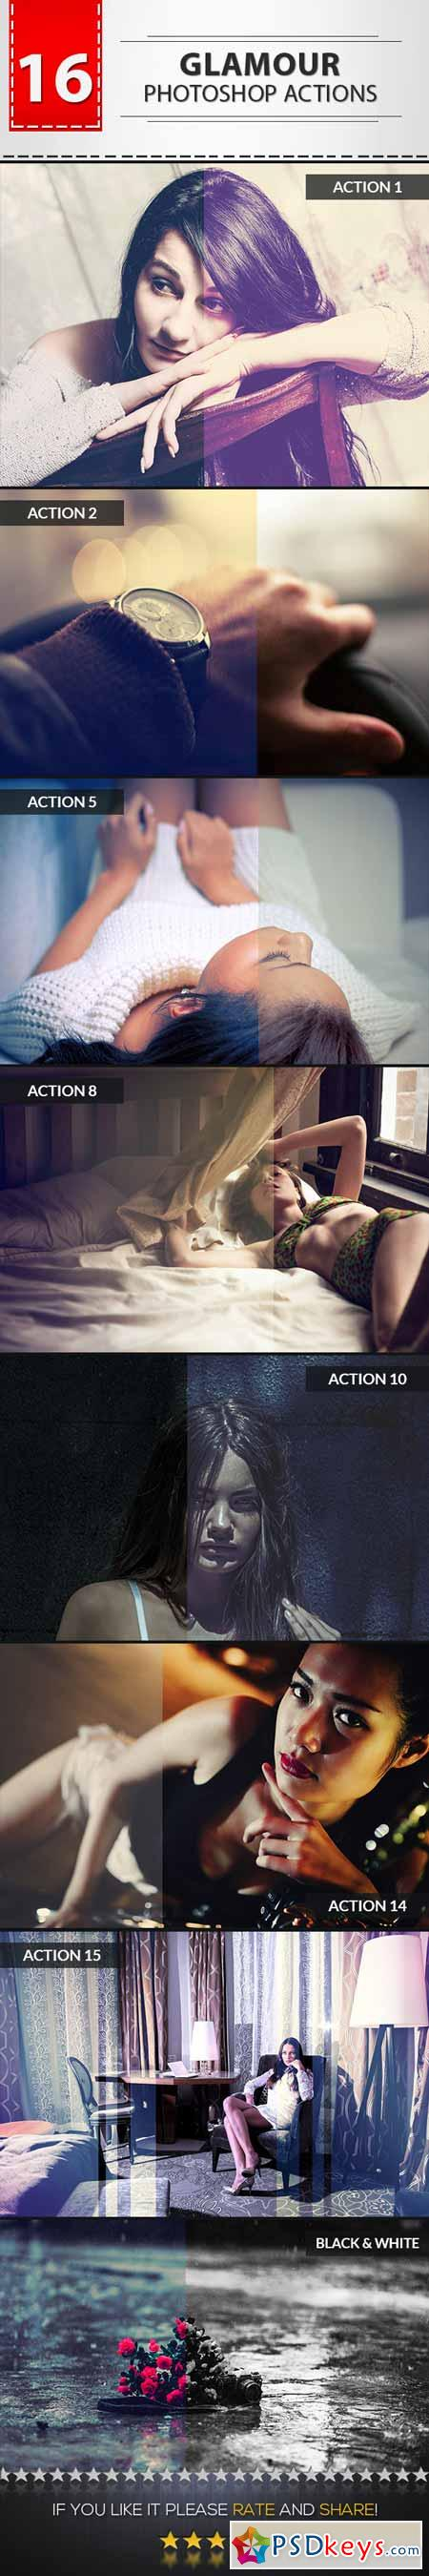 16 Glamour Photoshop Actions 9719399